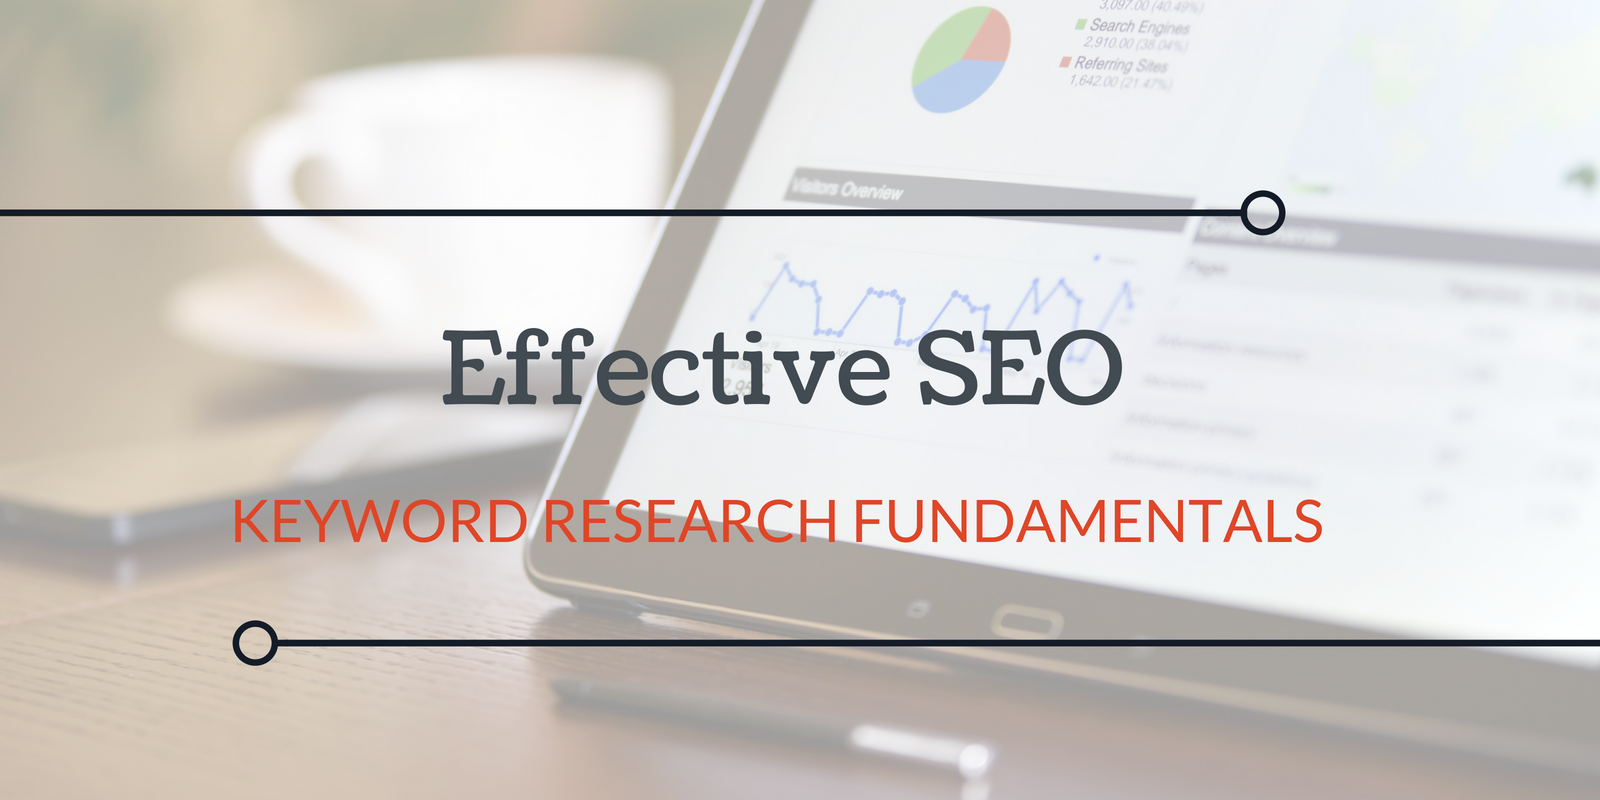 Effective SEO and Keyword Research Fundamentals